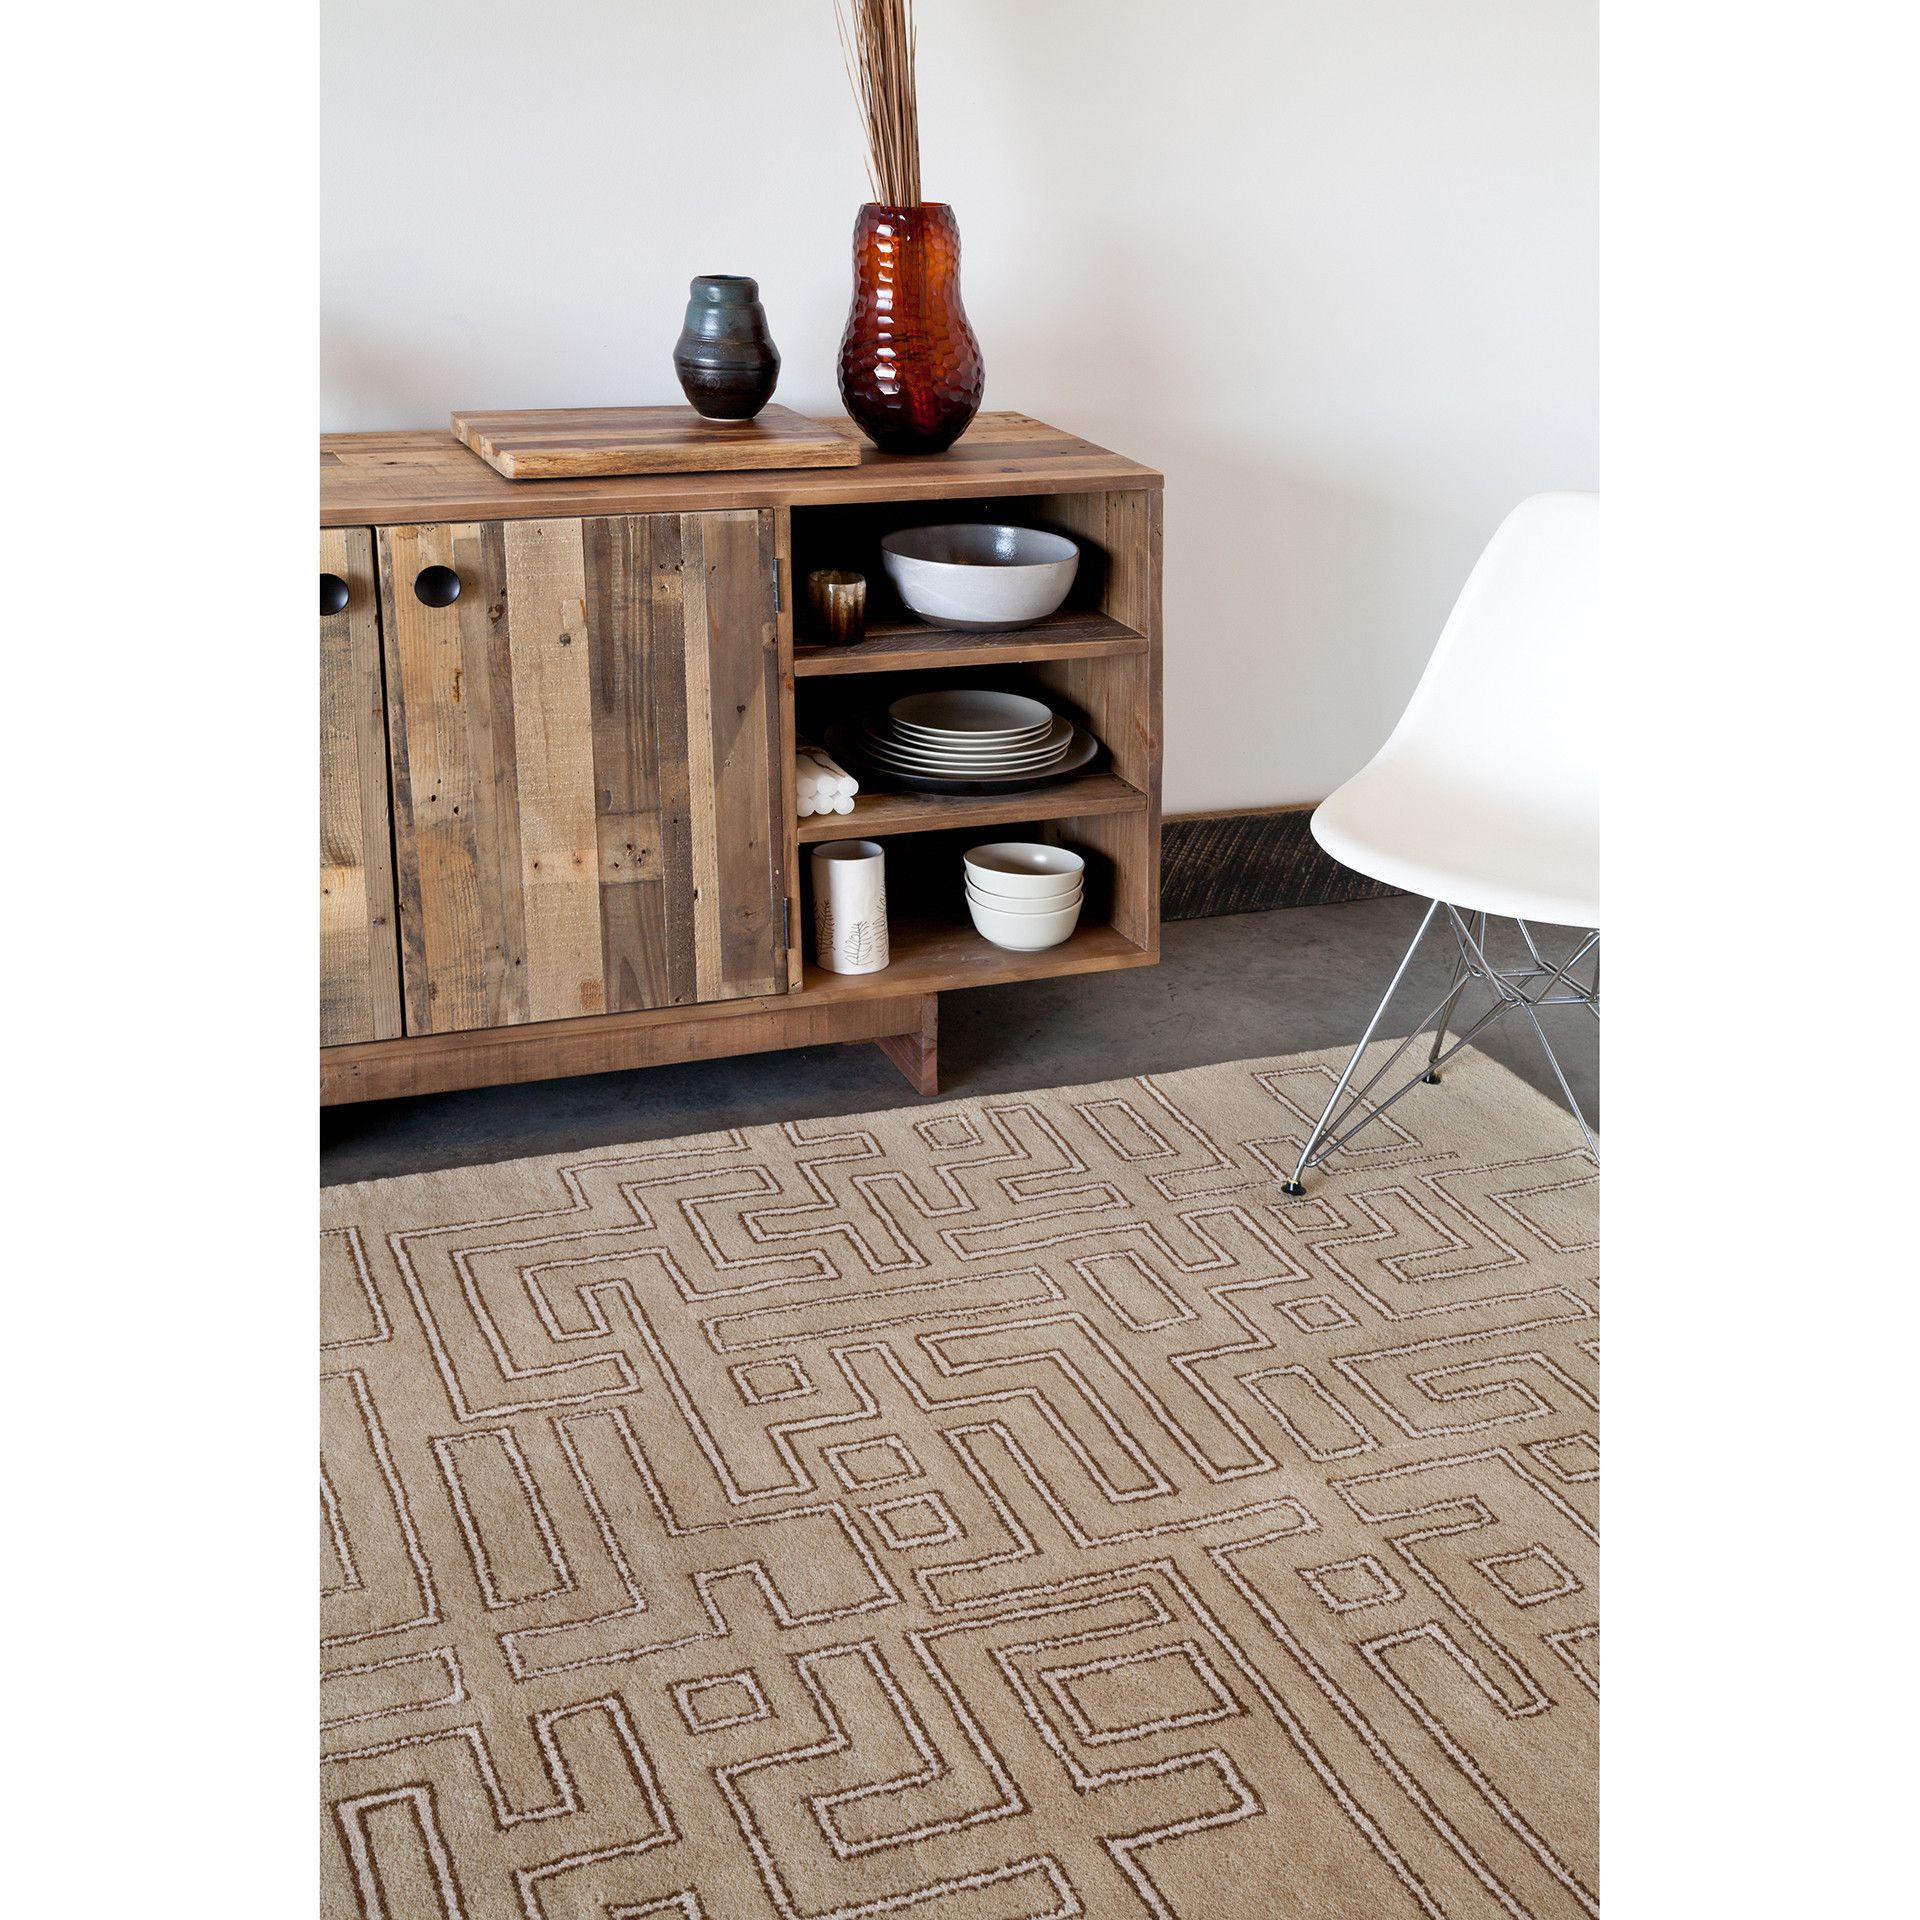 Stella Collection HandTufted Area Rug in Tan, Brown